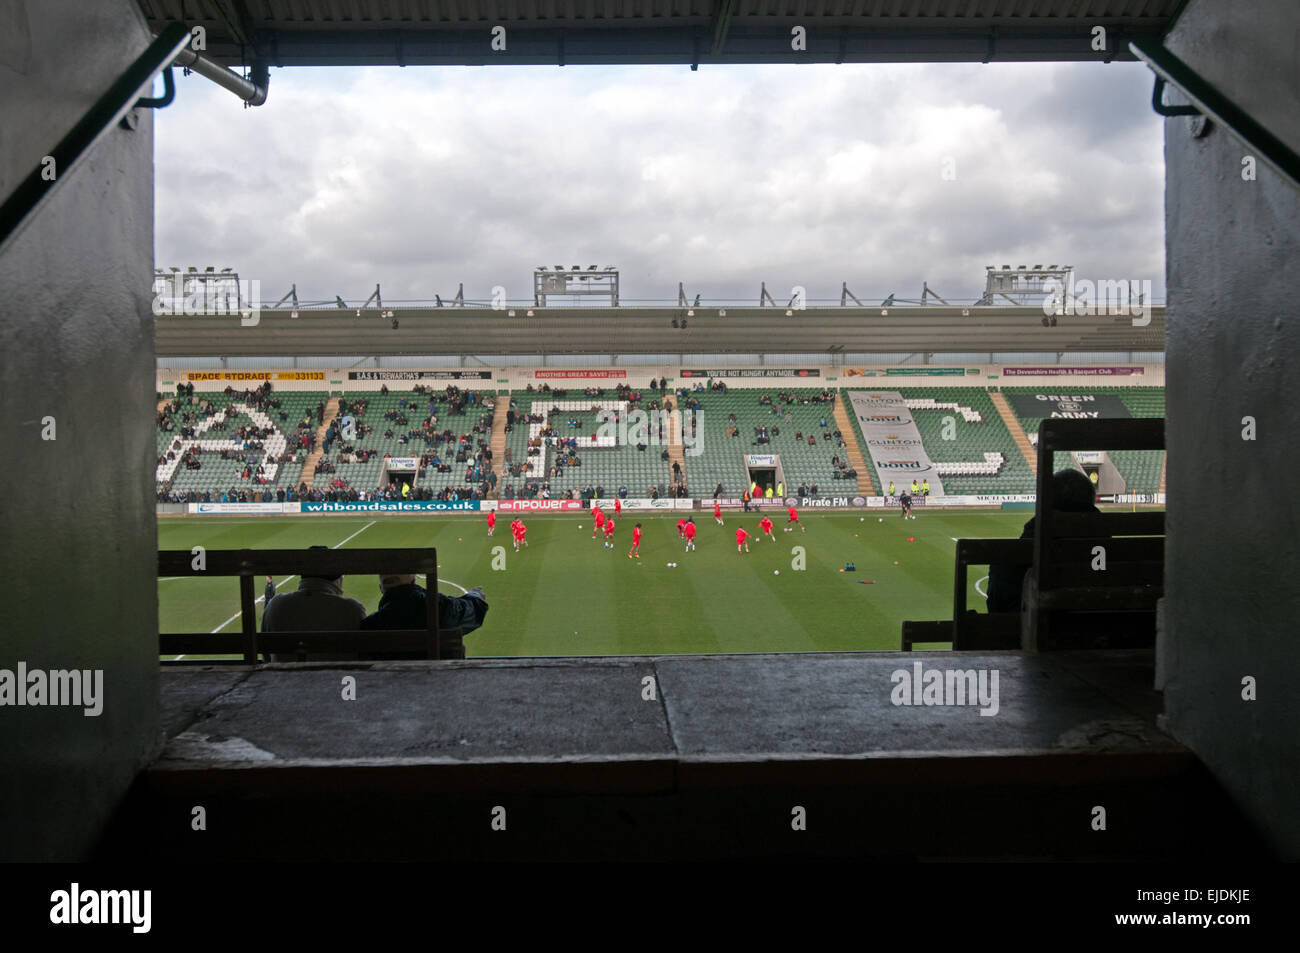 Players warm up at Plymouth Argyle FC - Stock Image